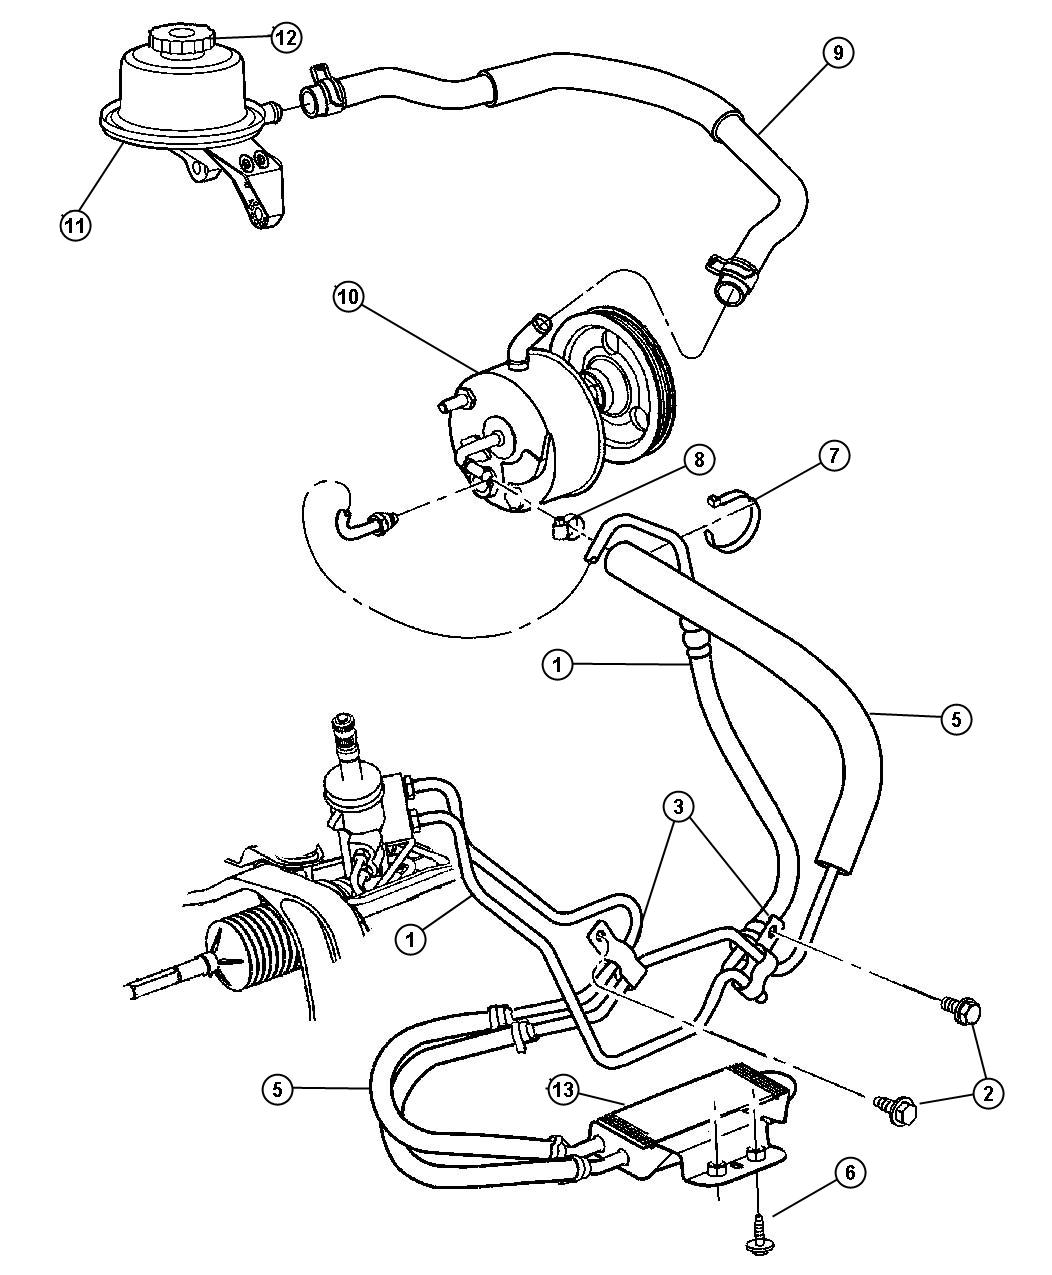 Dodge Dakota Steering Parts Diagram Free